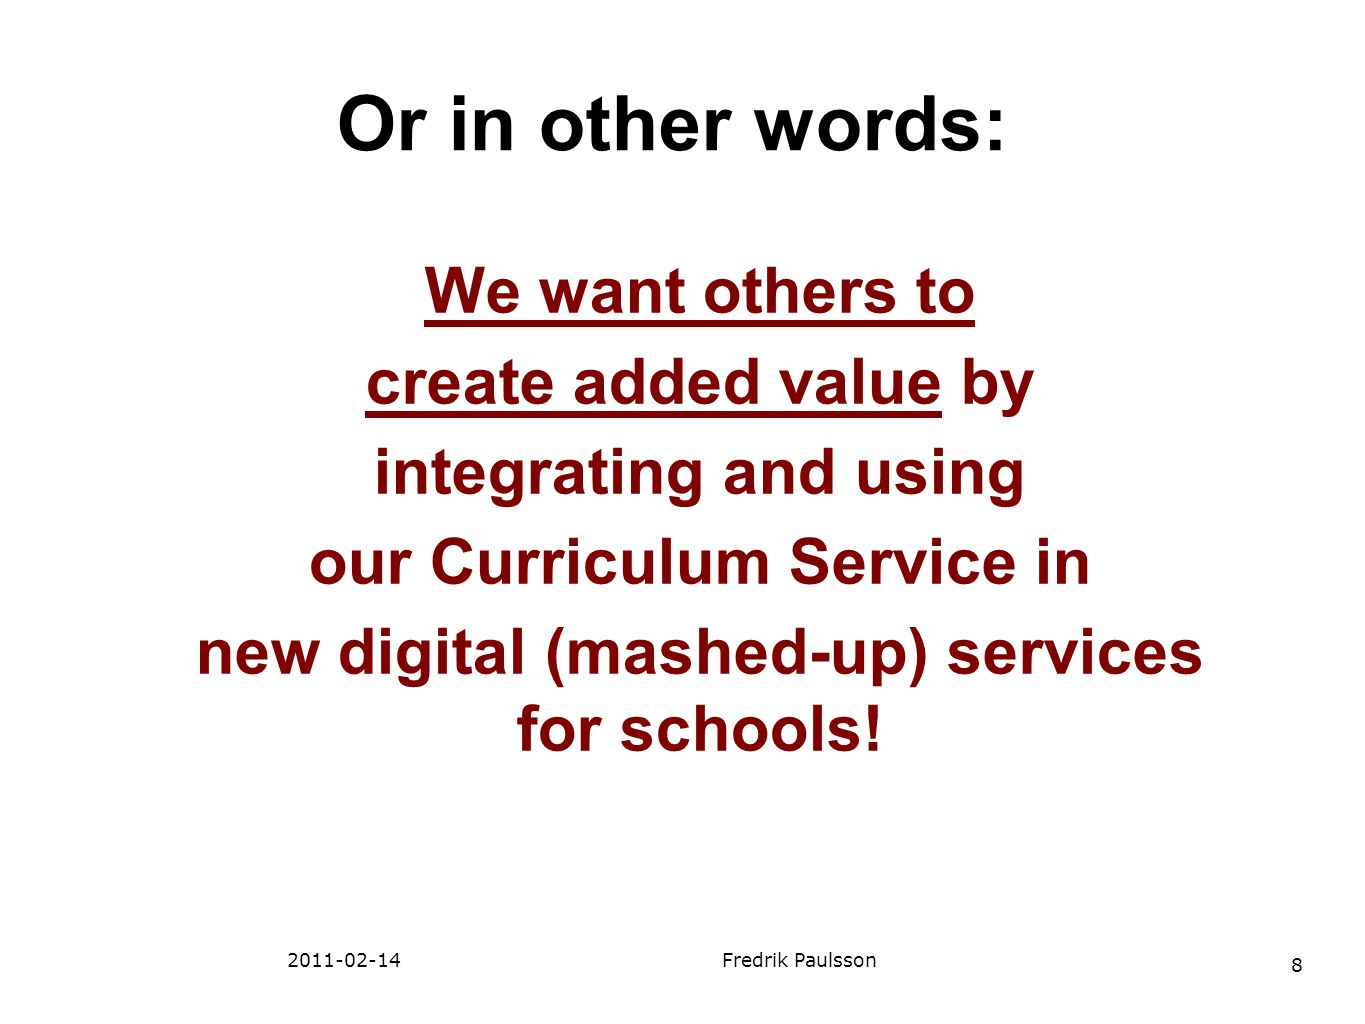 8 2011-02-14Fredrik Paulsson We want others to create added value by integrating and using our Curriculum Service in new digital (mashed-up) services